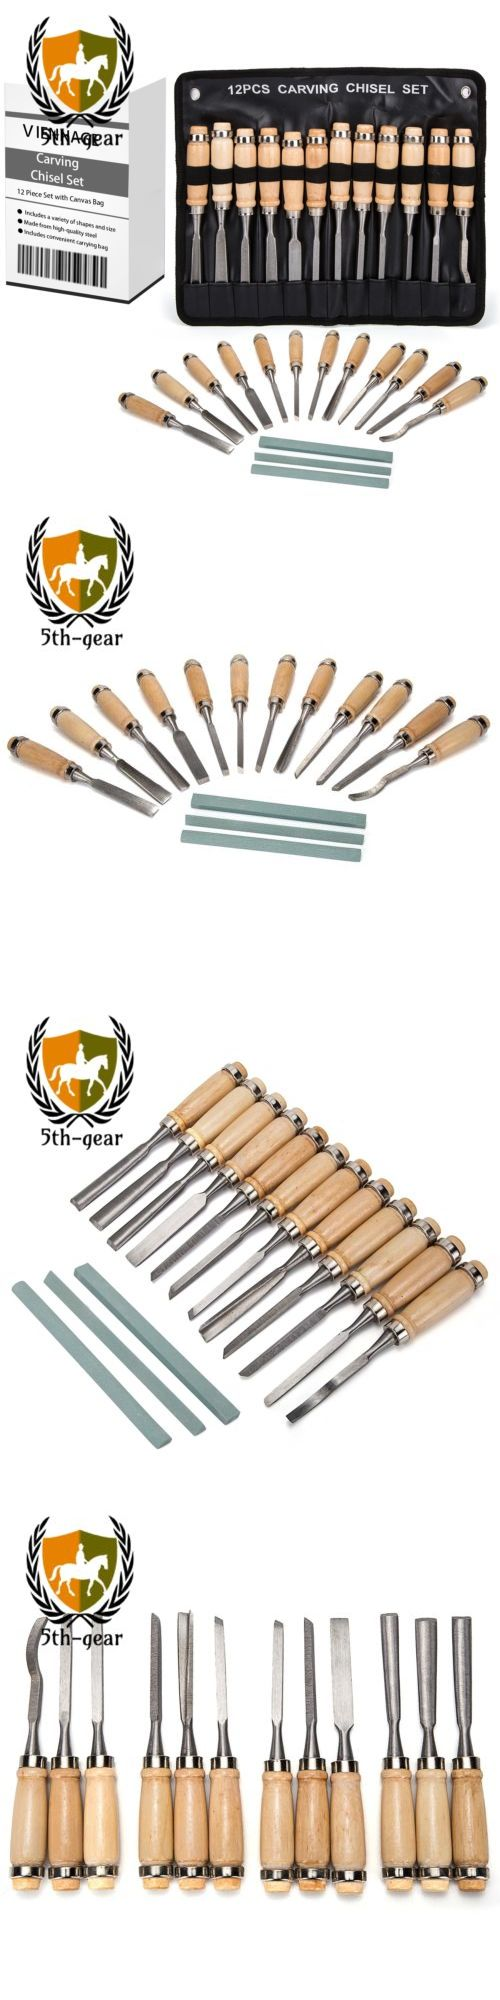 Wood Carving Hand Tools 160677: Viennage Wood Carving Chisel Set- 15 Piece Professional Tools With Carrying Case -> BUY IT NOW ONLY: $50.66 on eBay!